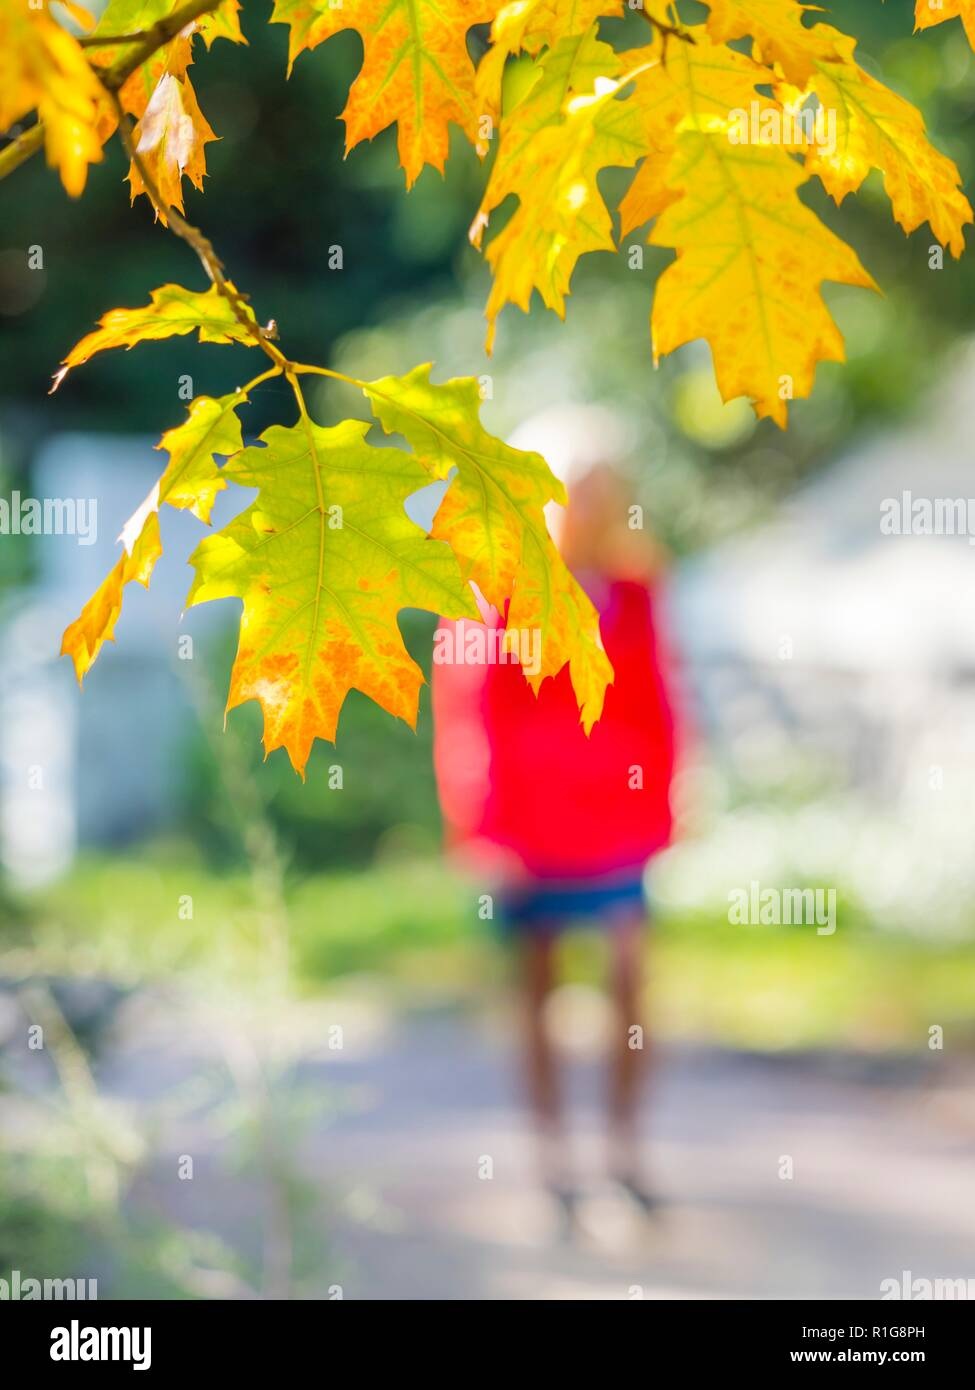 Autumn leaves and passing walking woman blurred unrecognized in background in Red clothing coat - Stock Image